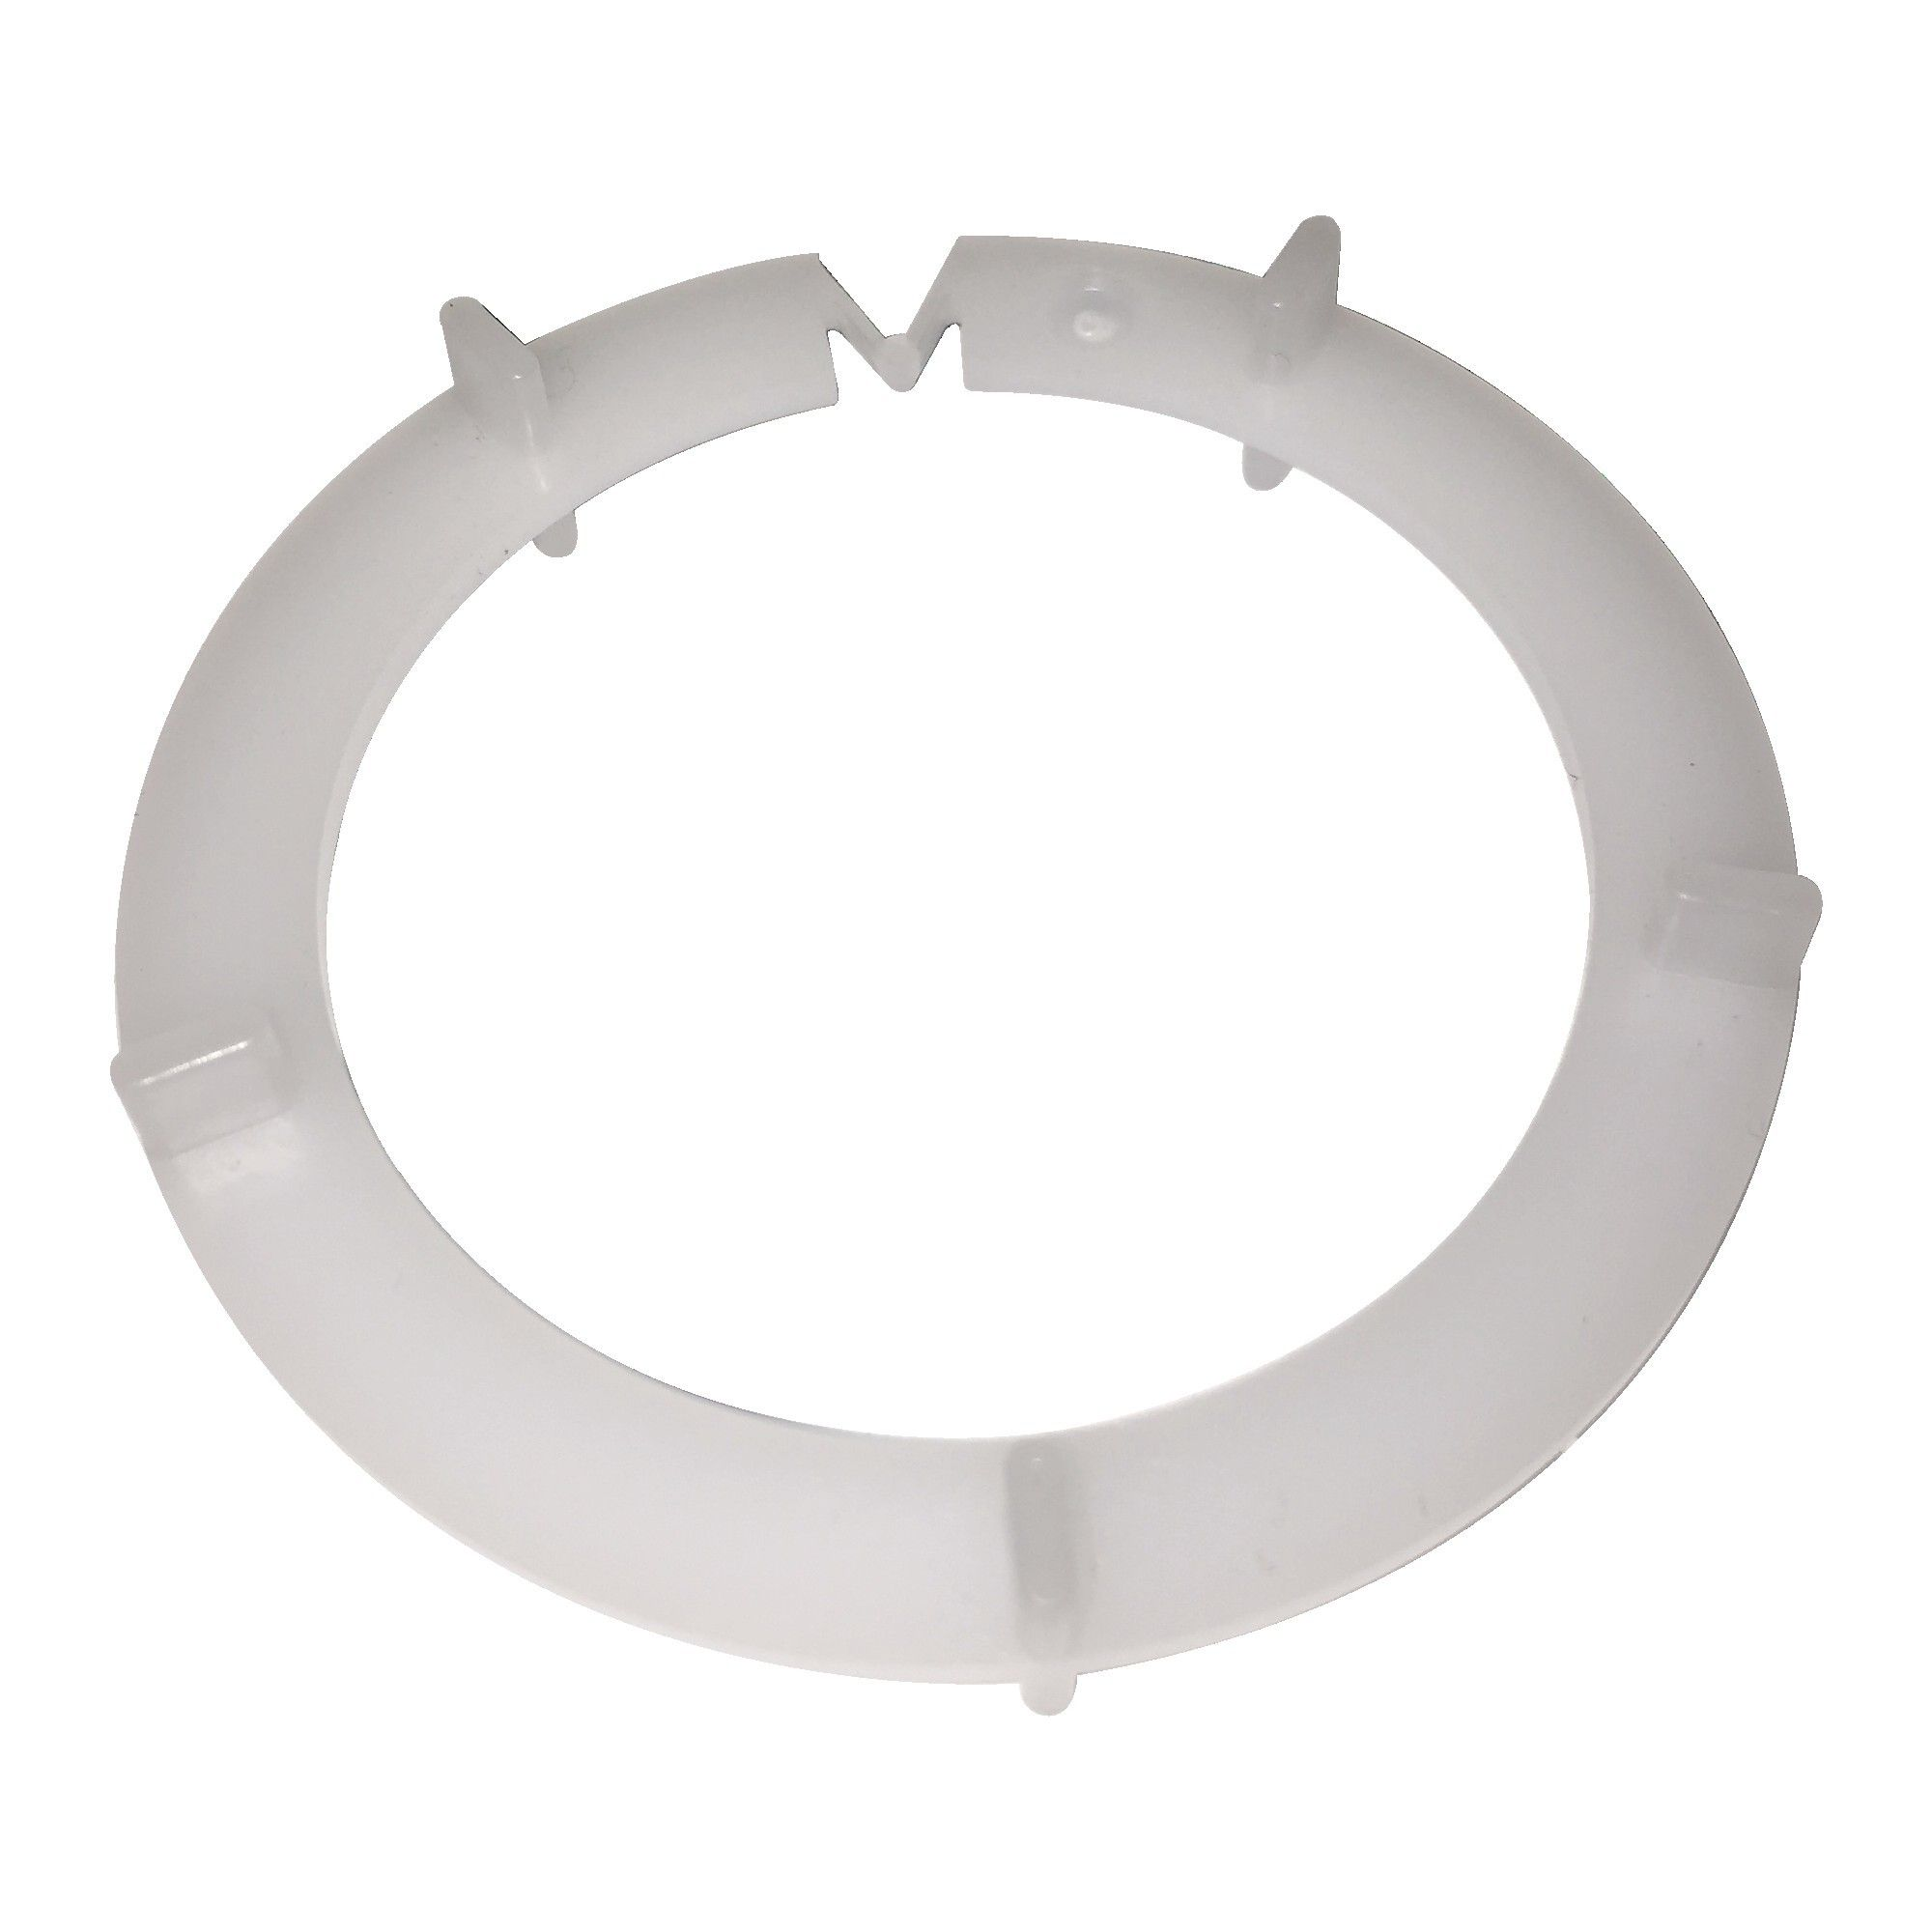 Trim Sleeve Spacer For 1300 1400 Series Shower Faucets Shower